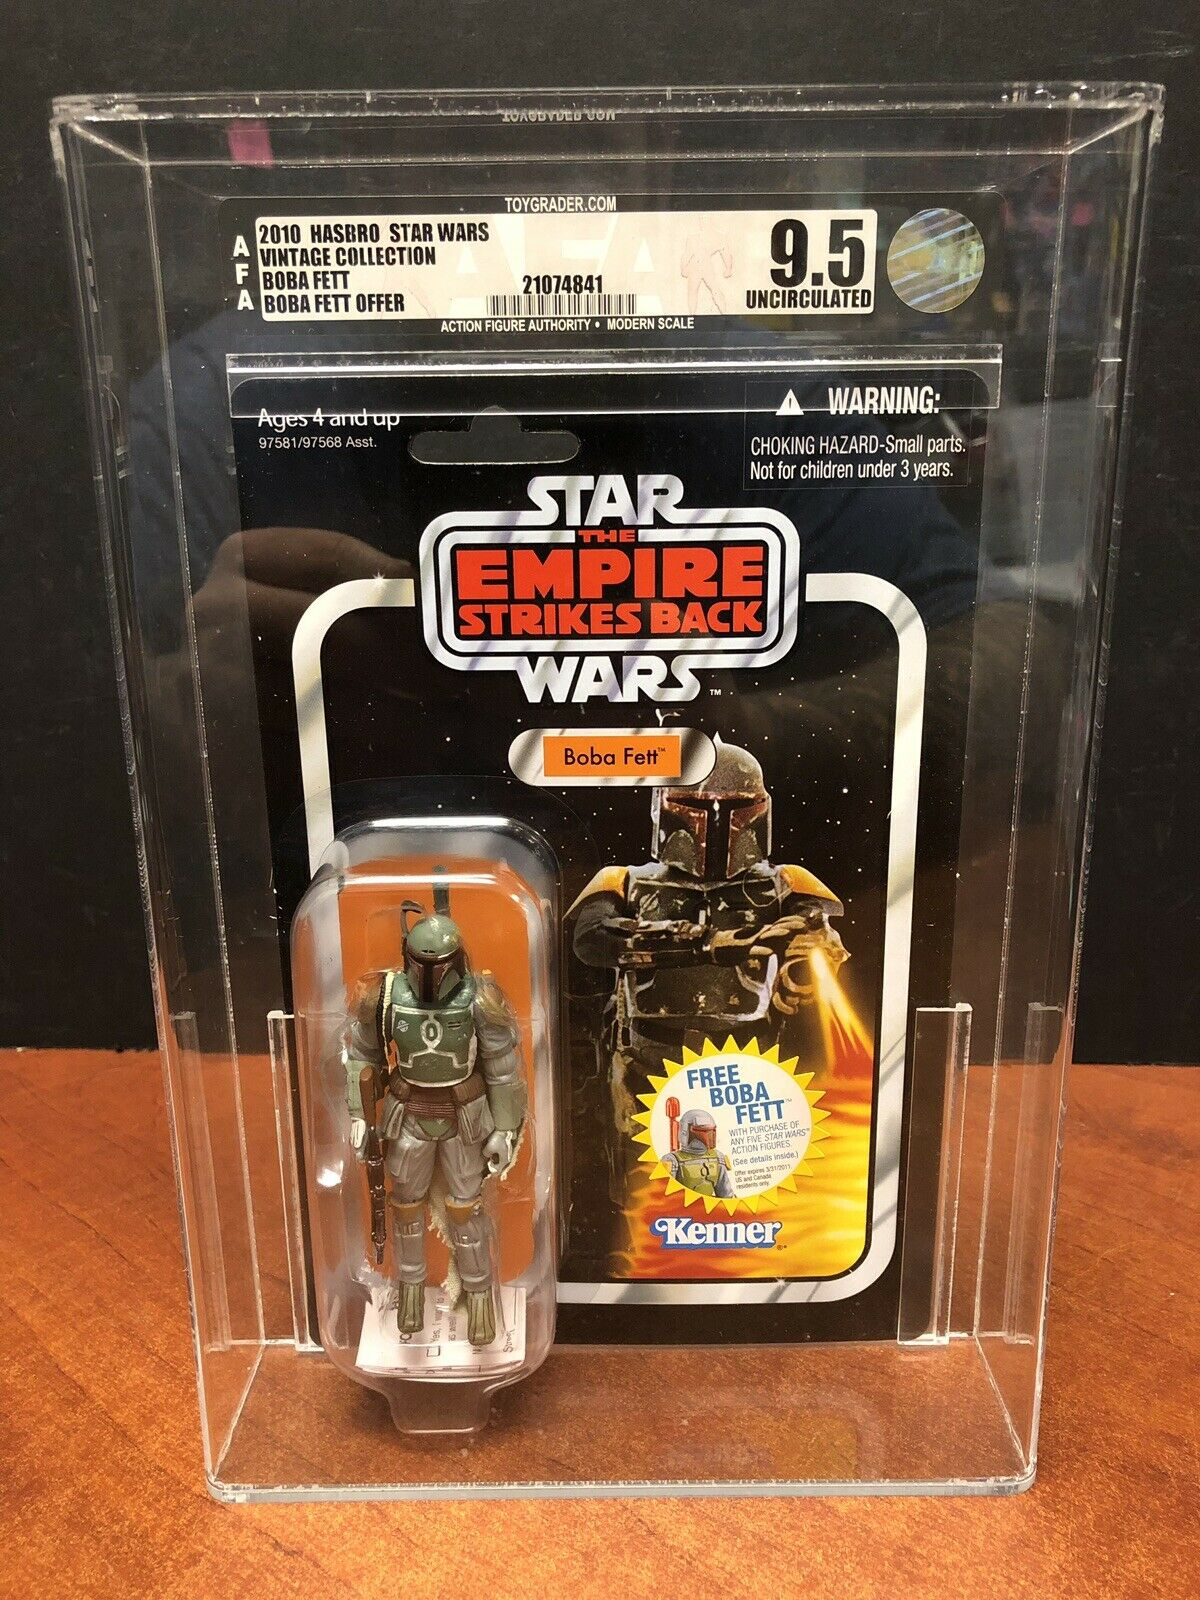 2010 Star Wars Vintage Collection Boba Fett AFA 9.5 KJ016